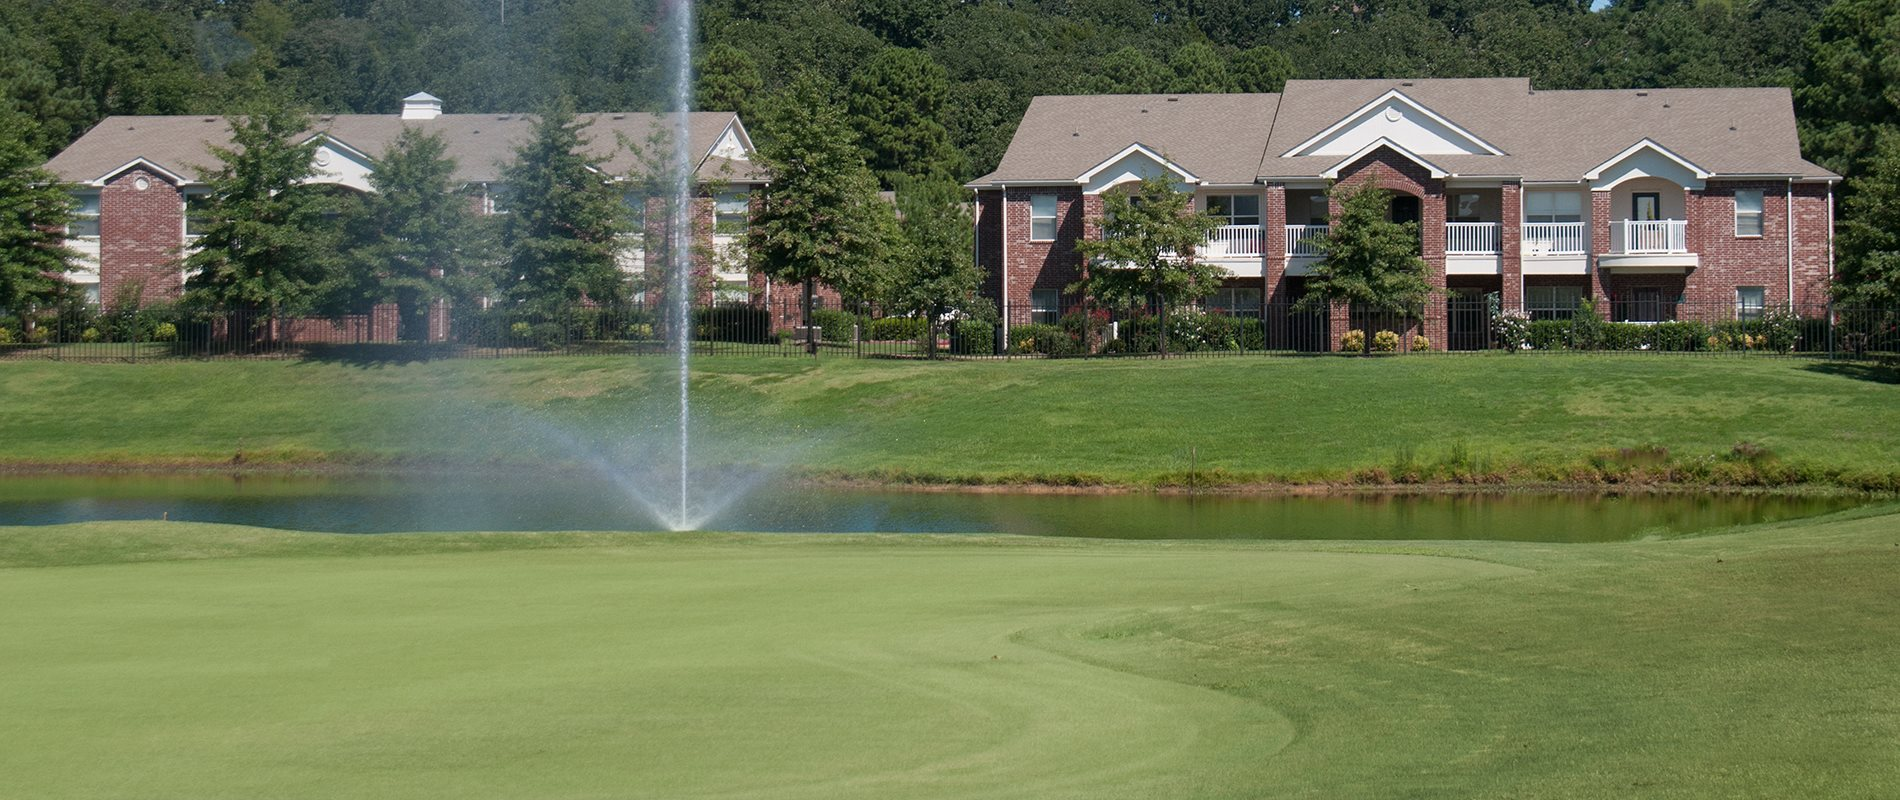 Mature Landscaping at The Links at Cadron Valley, Conway, AR 72034